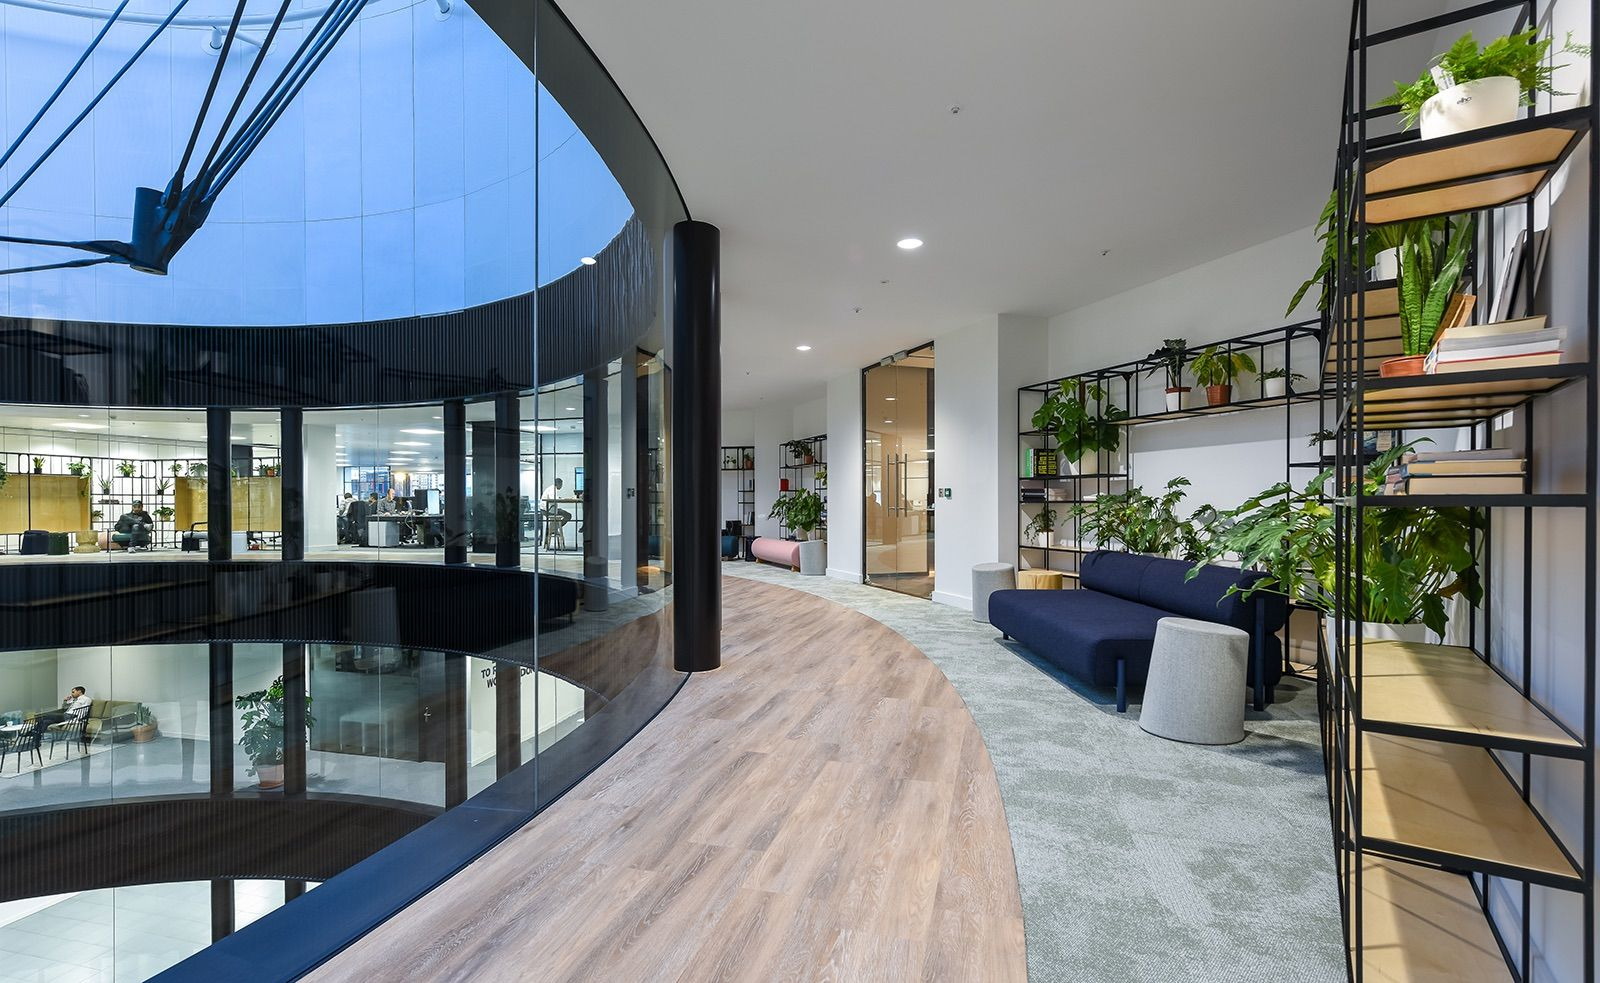 A Peek Inside Lyst's Modern London Office | Interior ...